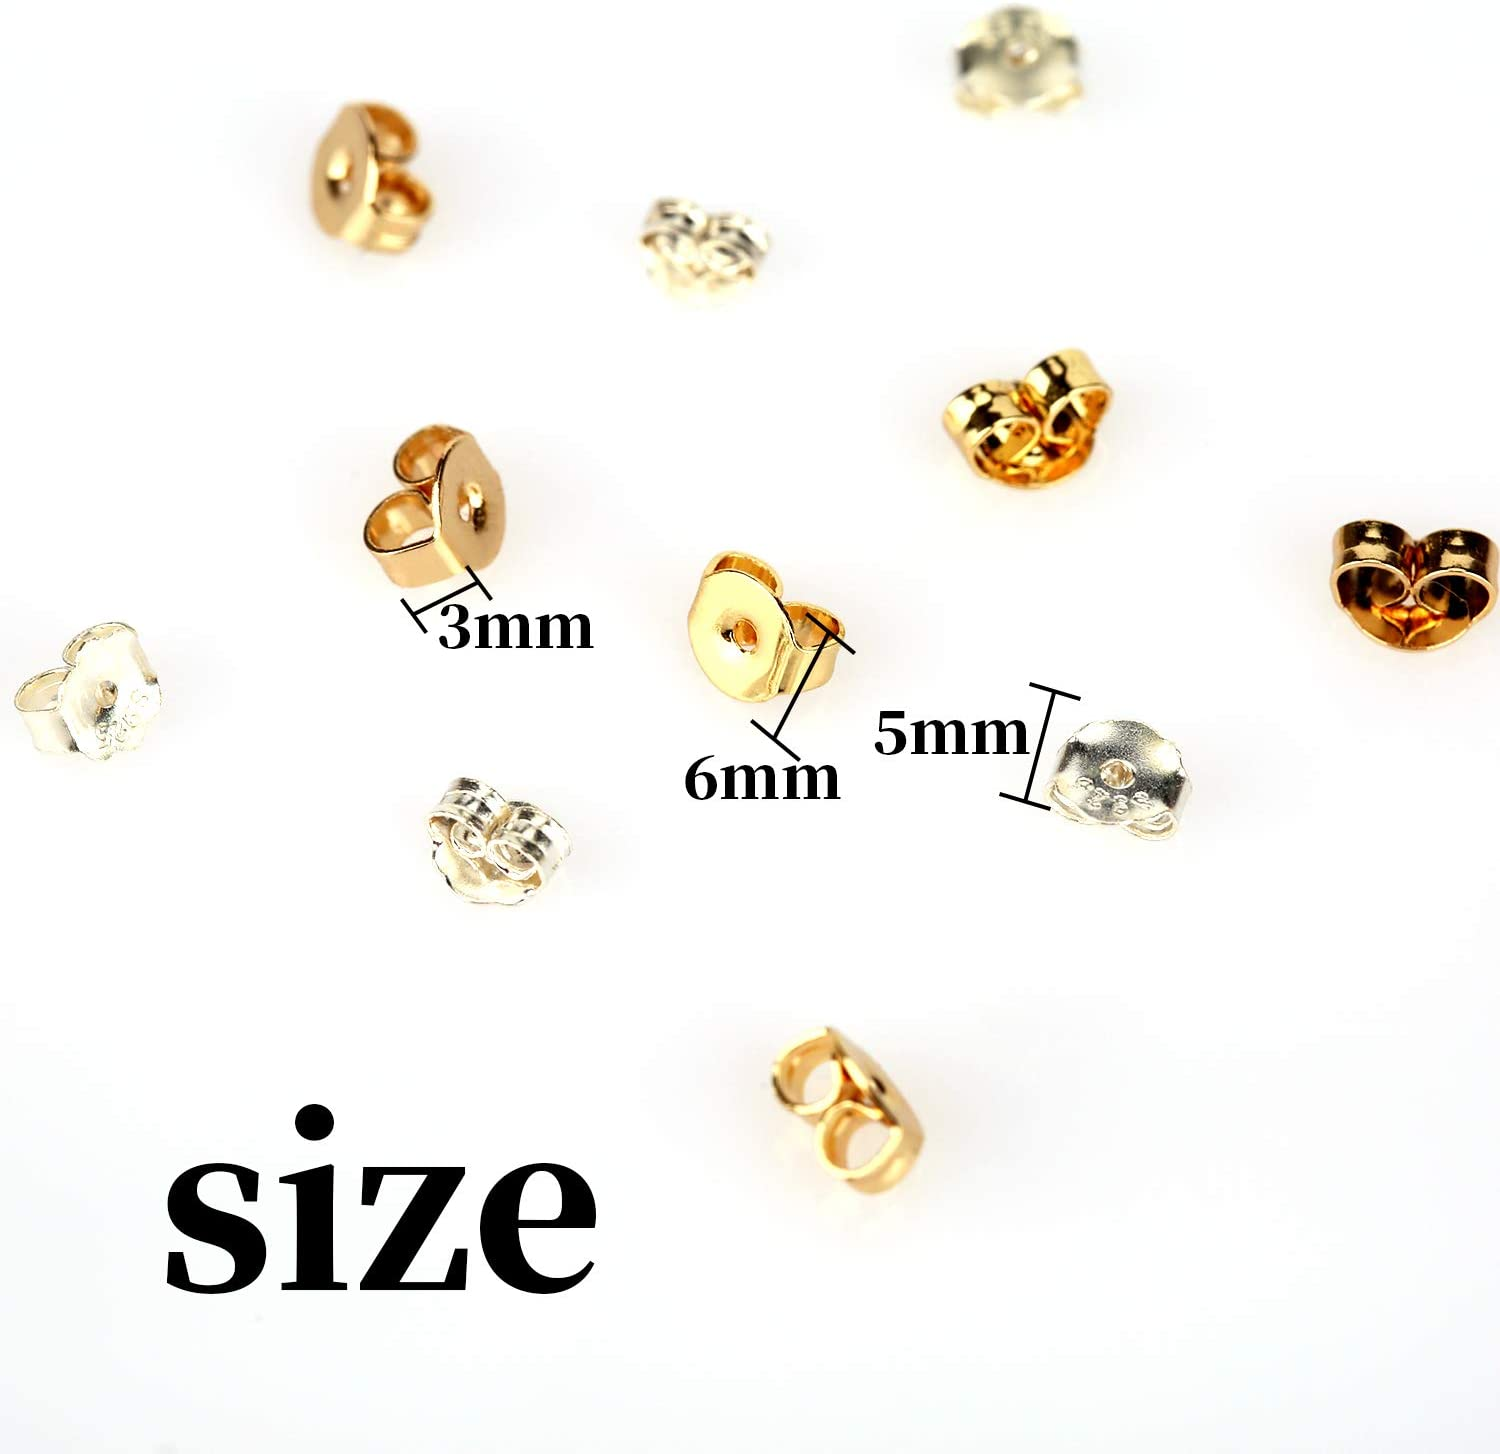 6/×5mm AIEX 12pcs//6 Pairs Earring Backs 925 Sterling Silver 14k Gold Replacement Secure Ear/Locking for Stud Earrings Jewelry Making Silver Gold